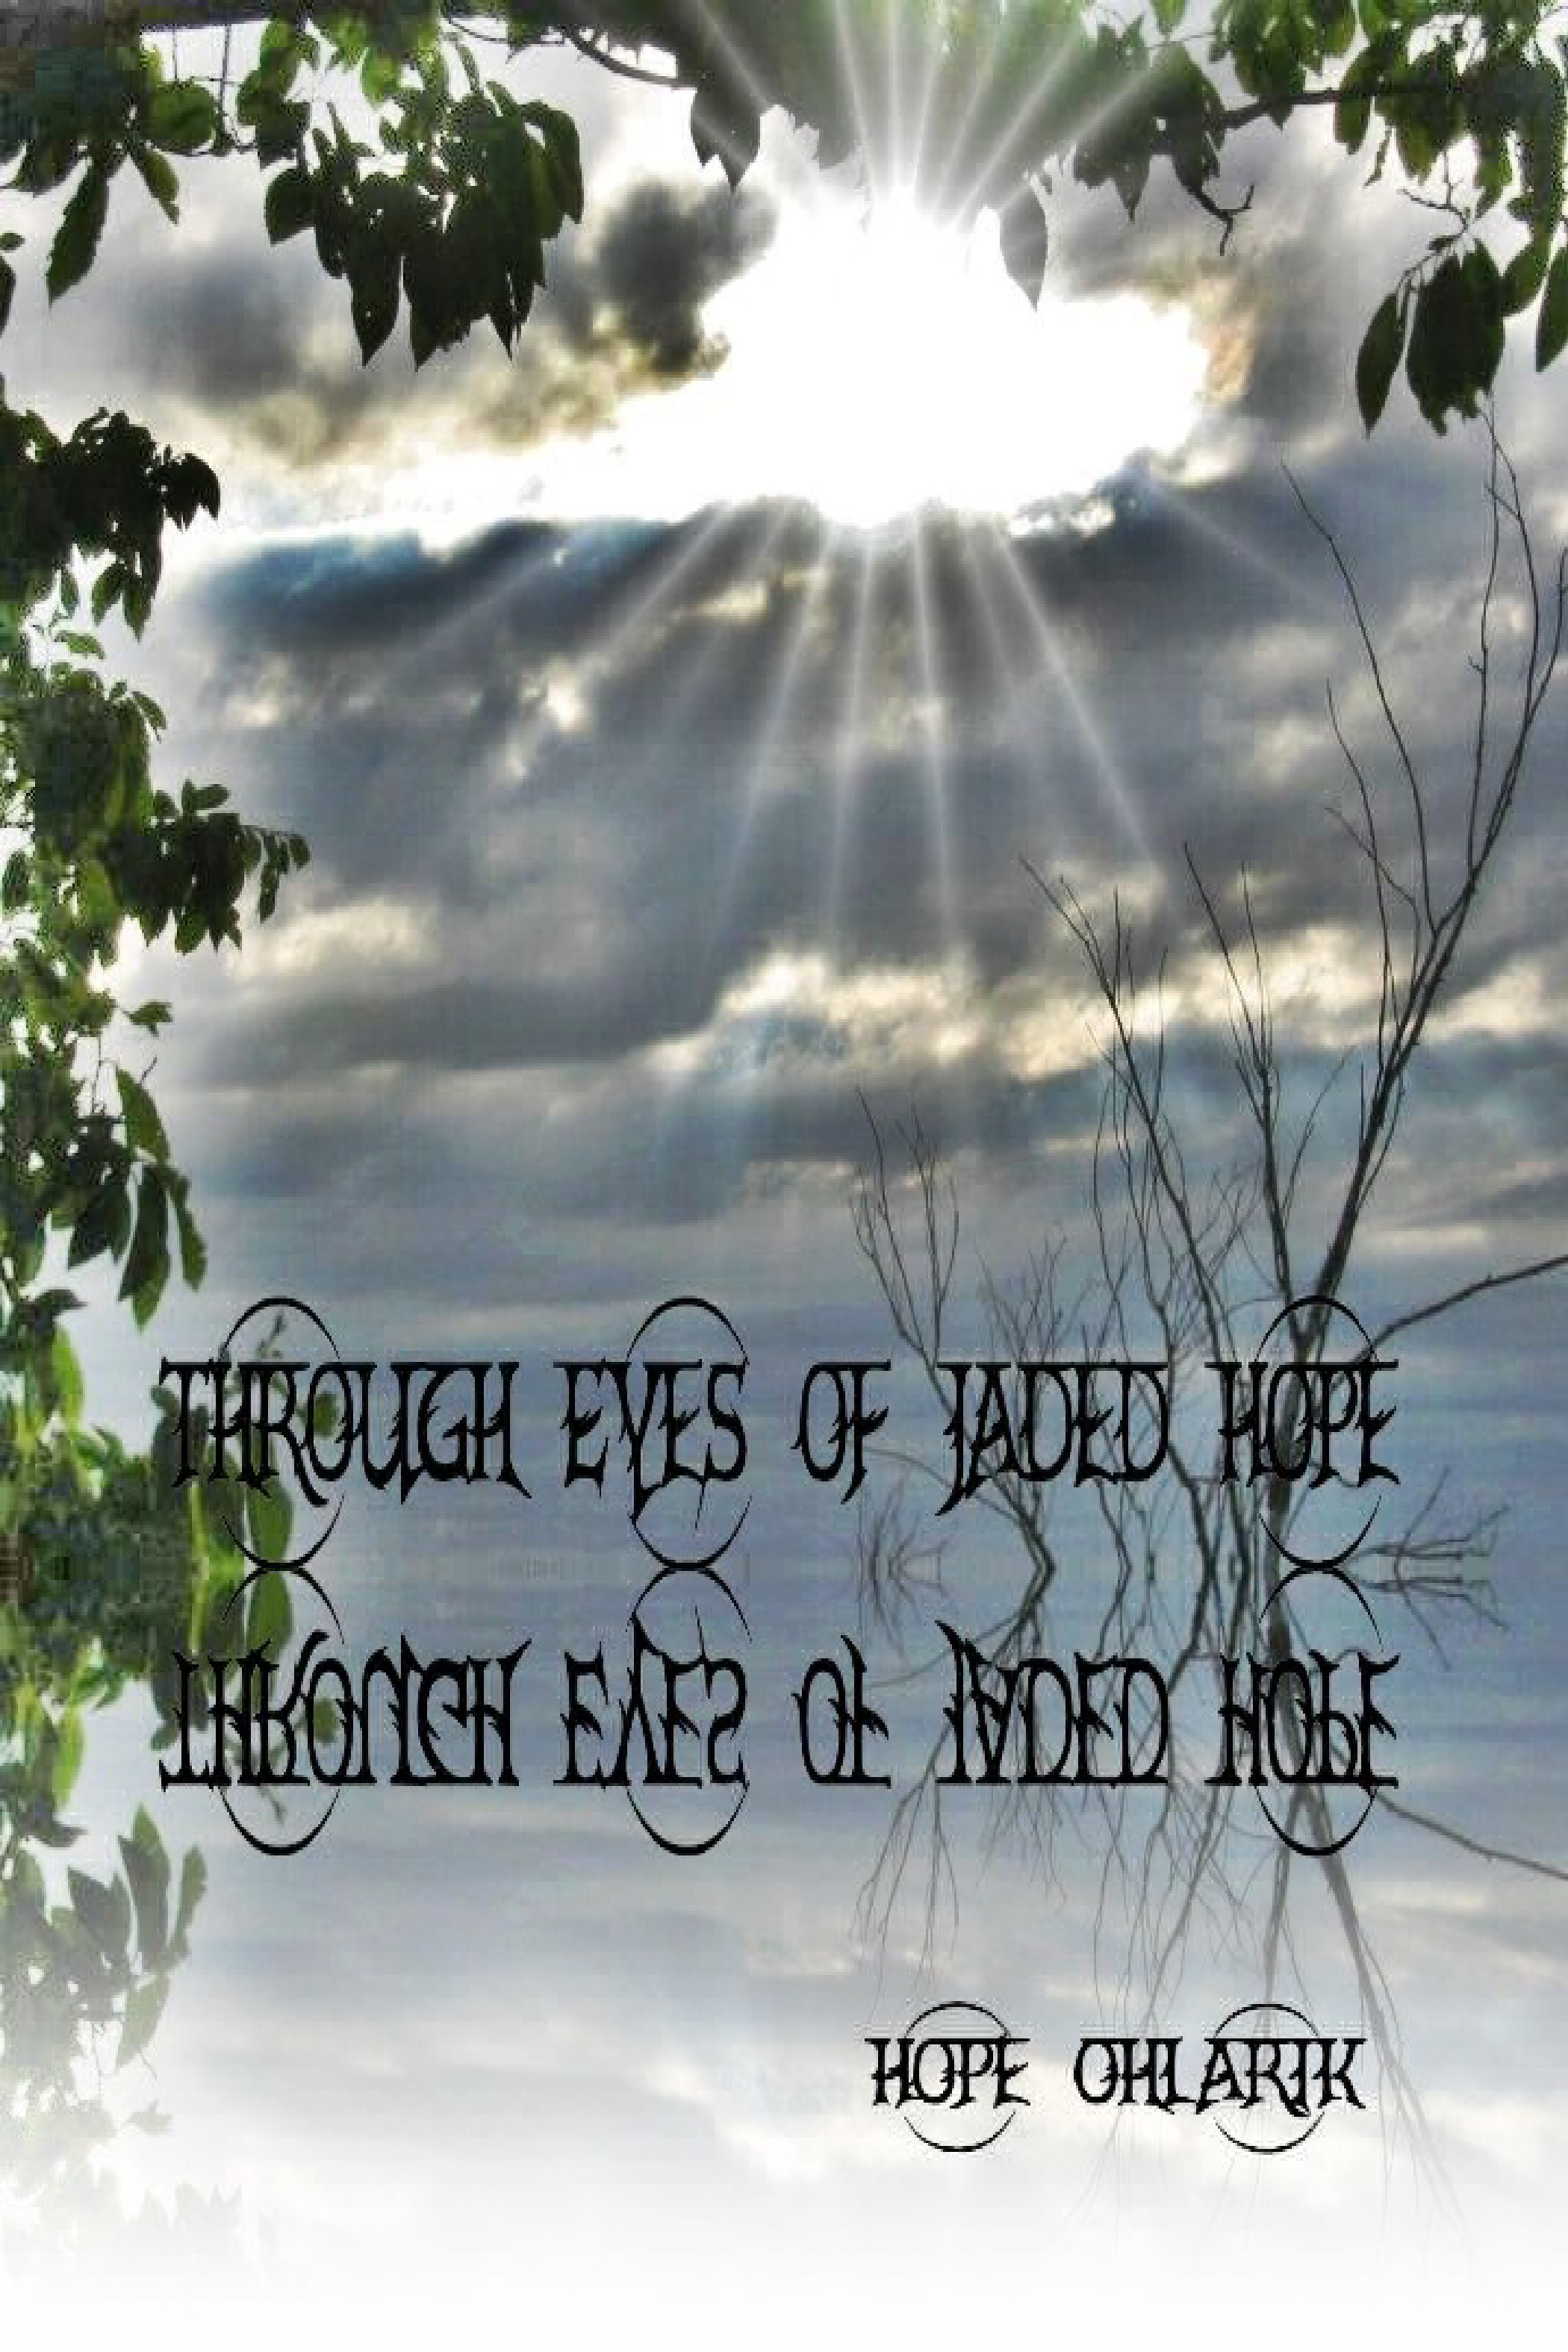 Through Eyes of Jaded Hope